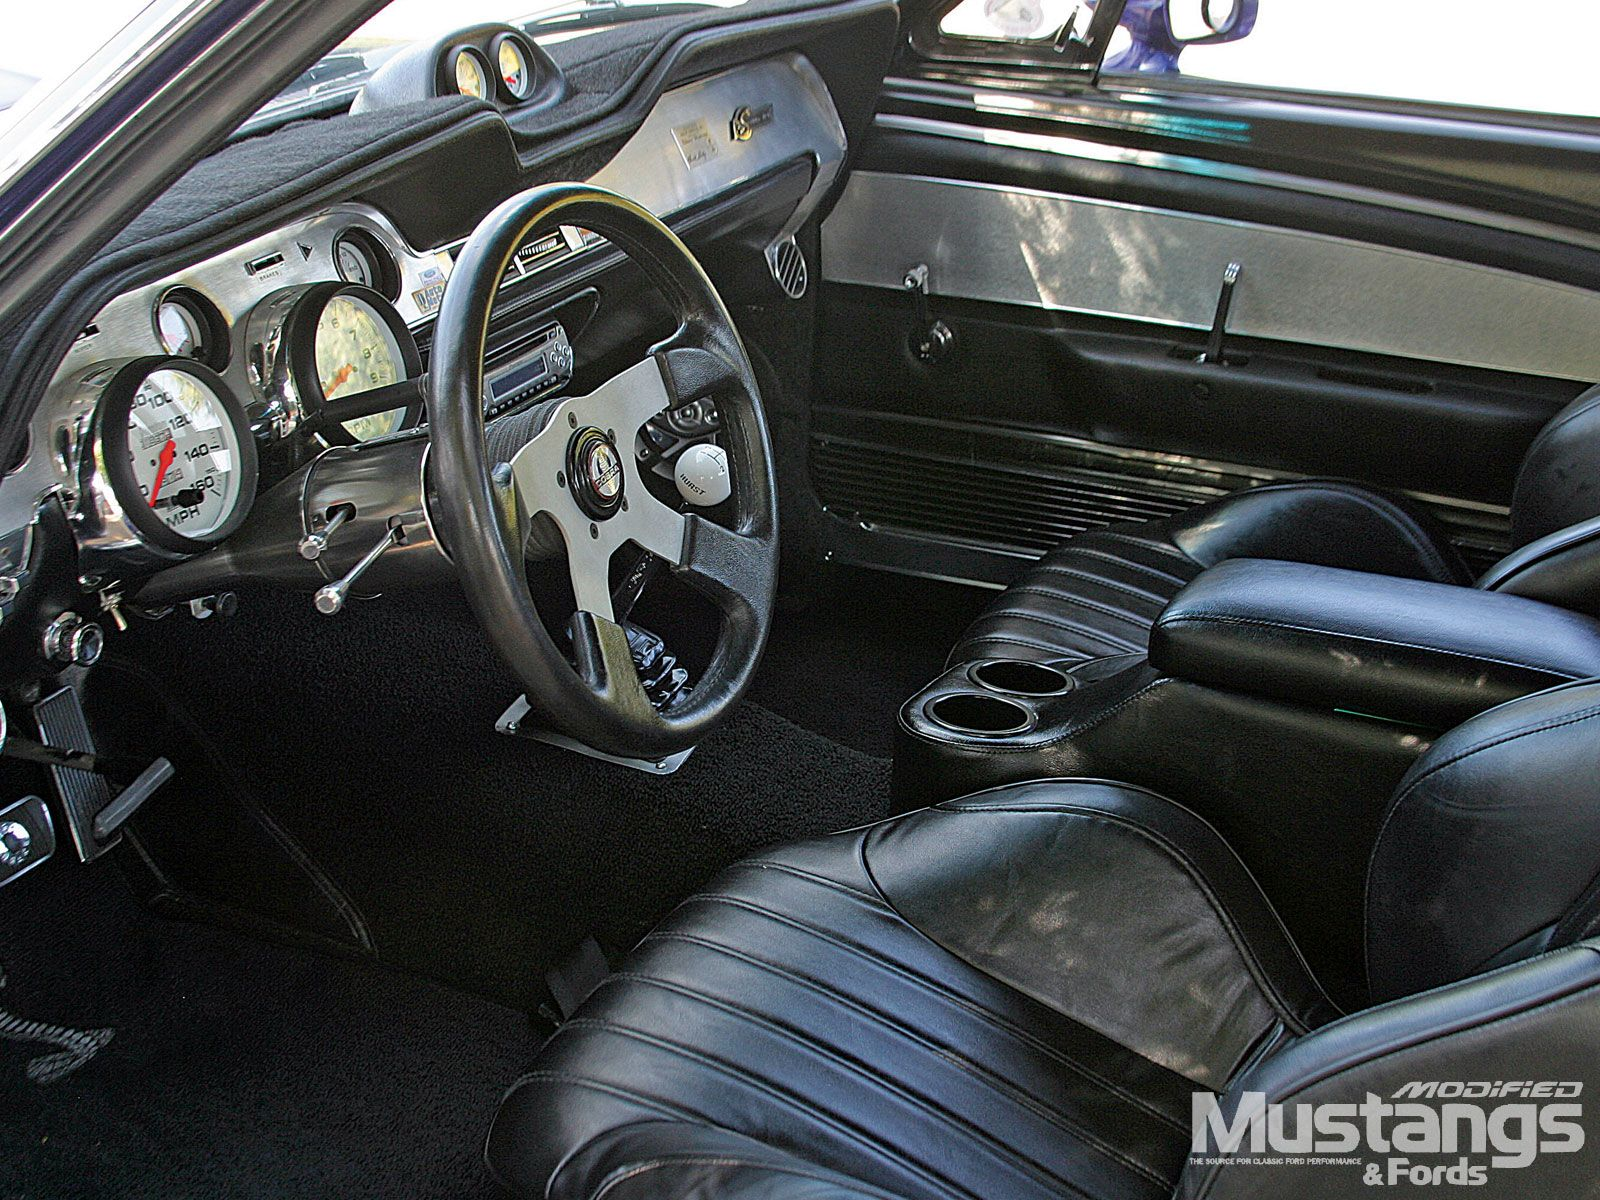 interiors that dash 67 coupe 67 mustang coupe ideas pinterest coupe 67 mustang coupe and 67 mustang